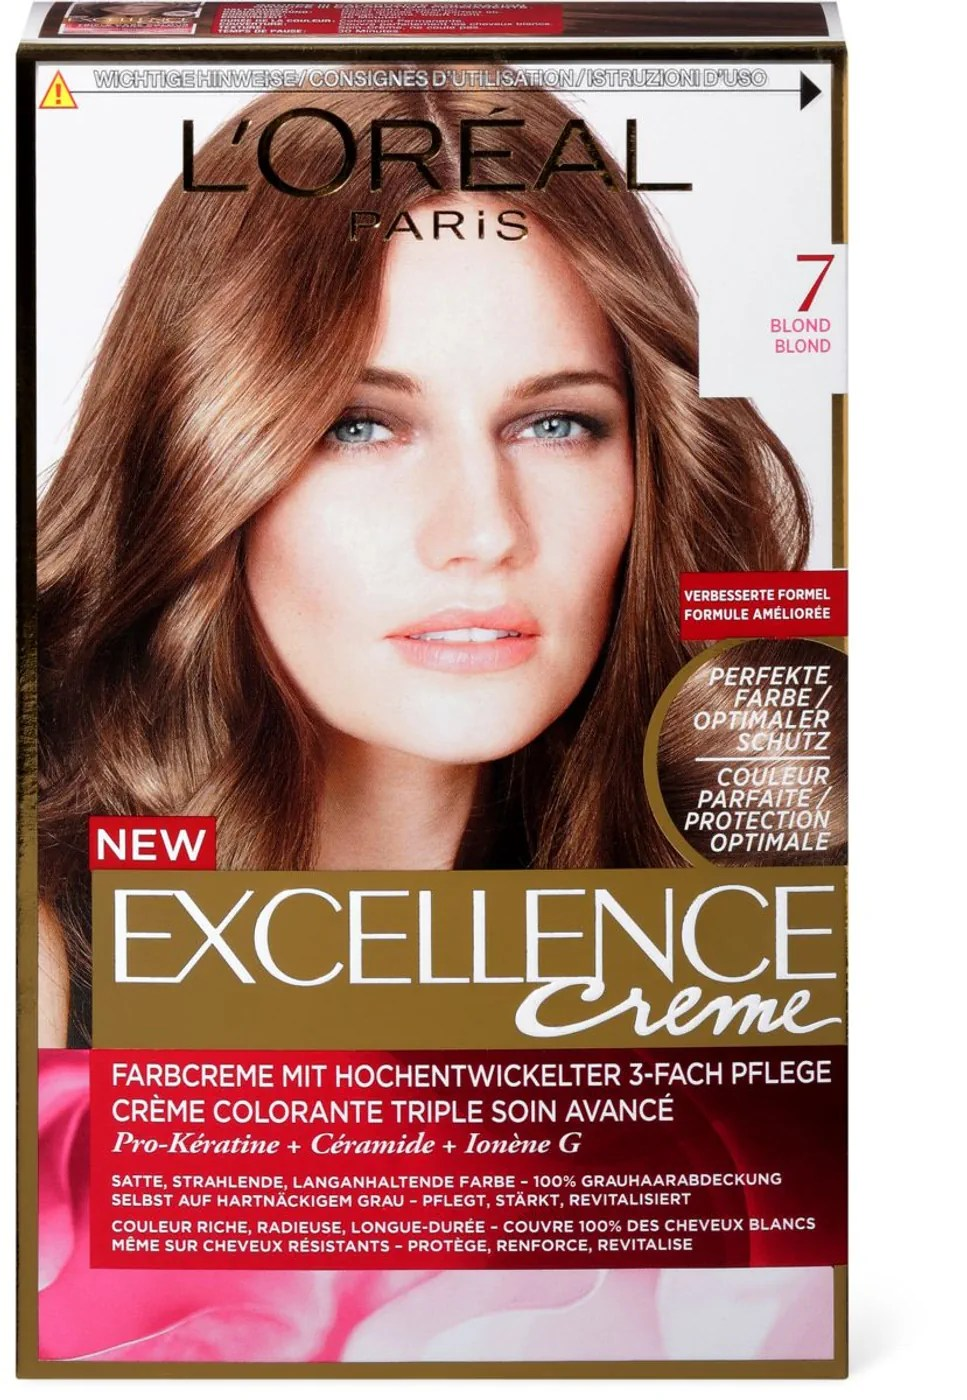 LOral Excellence Creme 7 Blond Migros